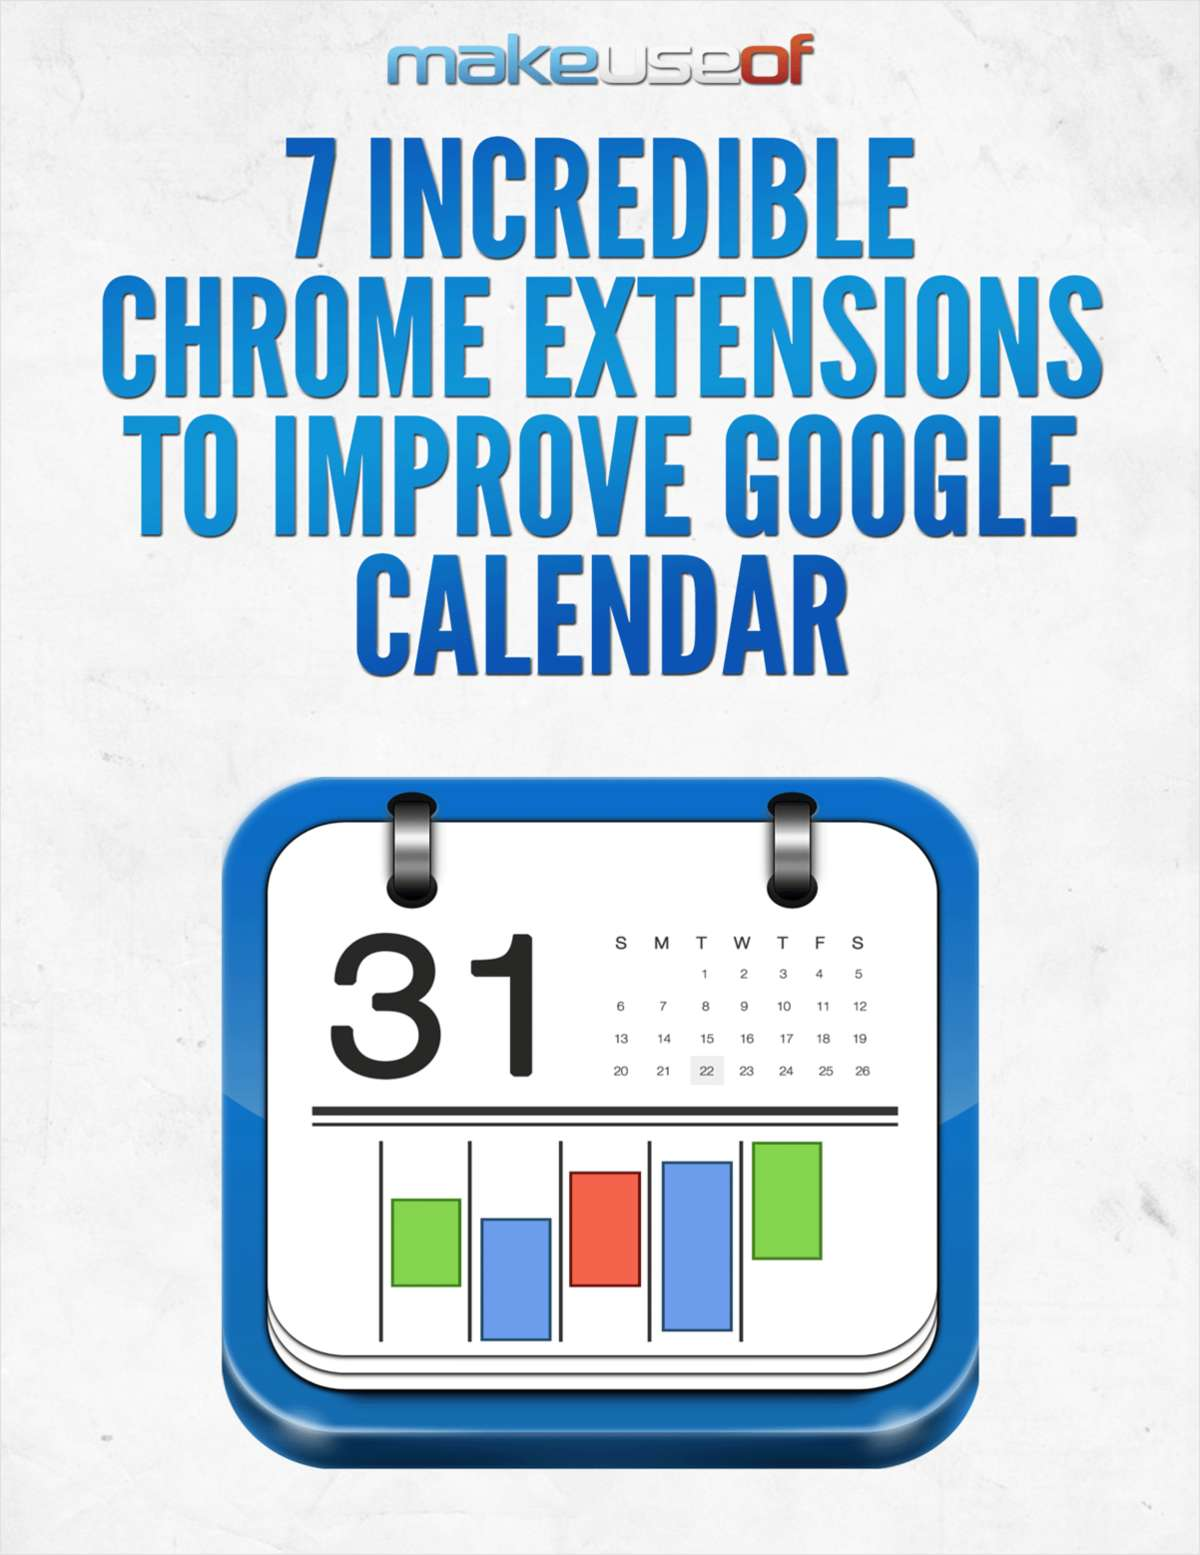 7 Incredible Chrome Extensions to Improve Google Calendar